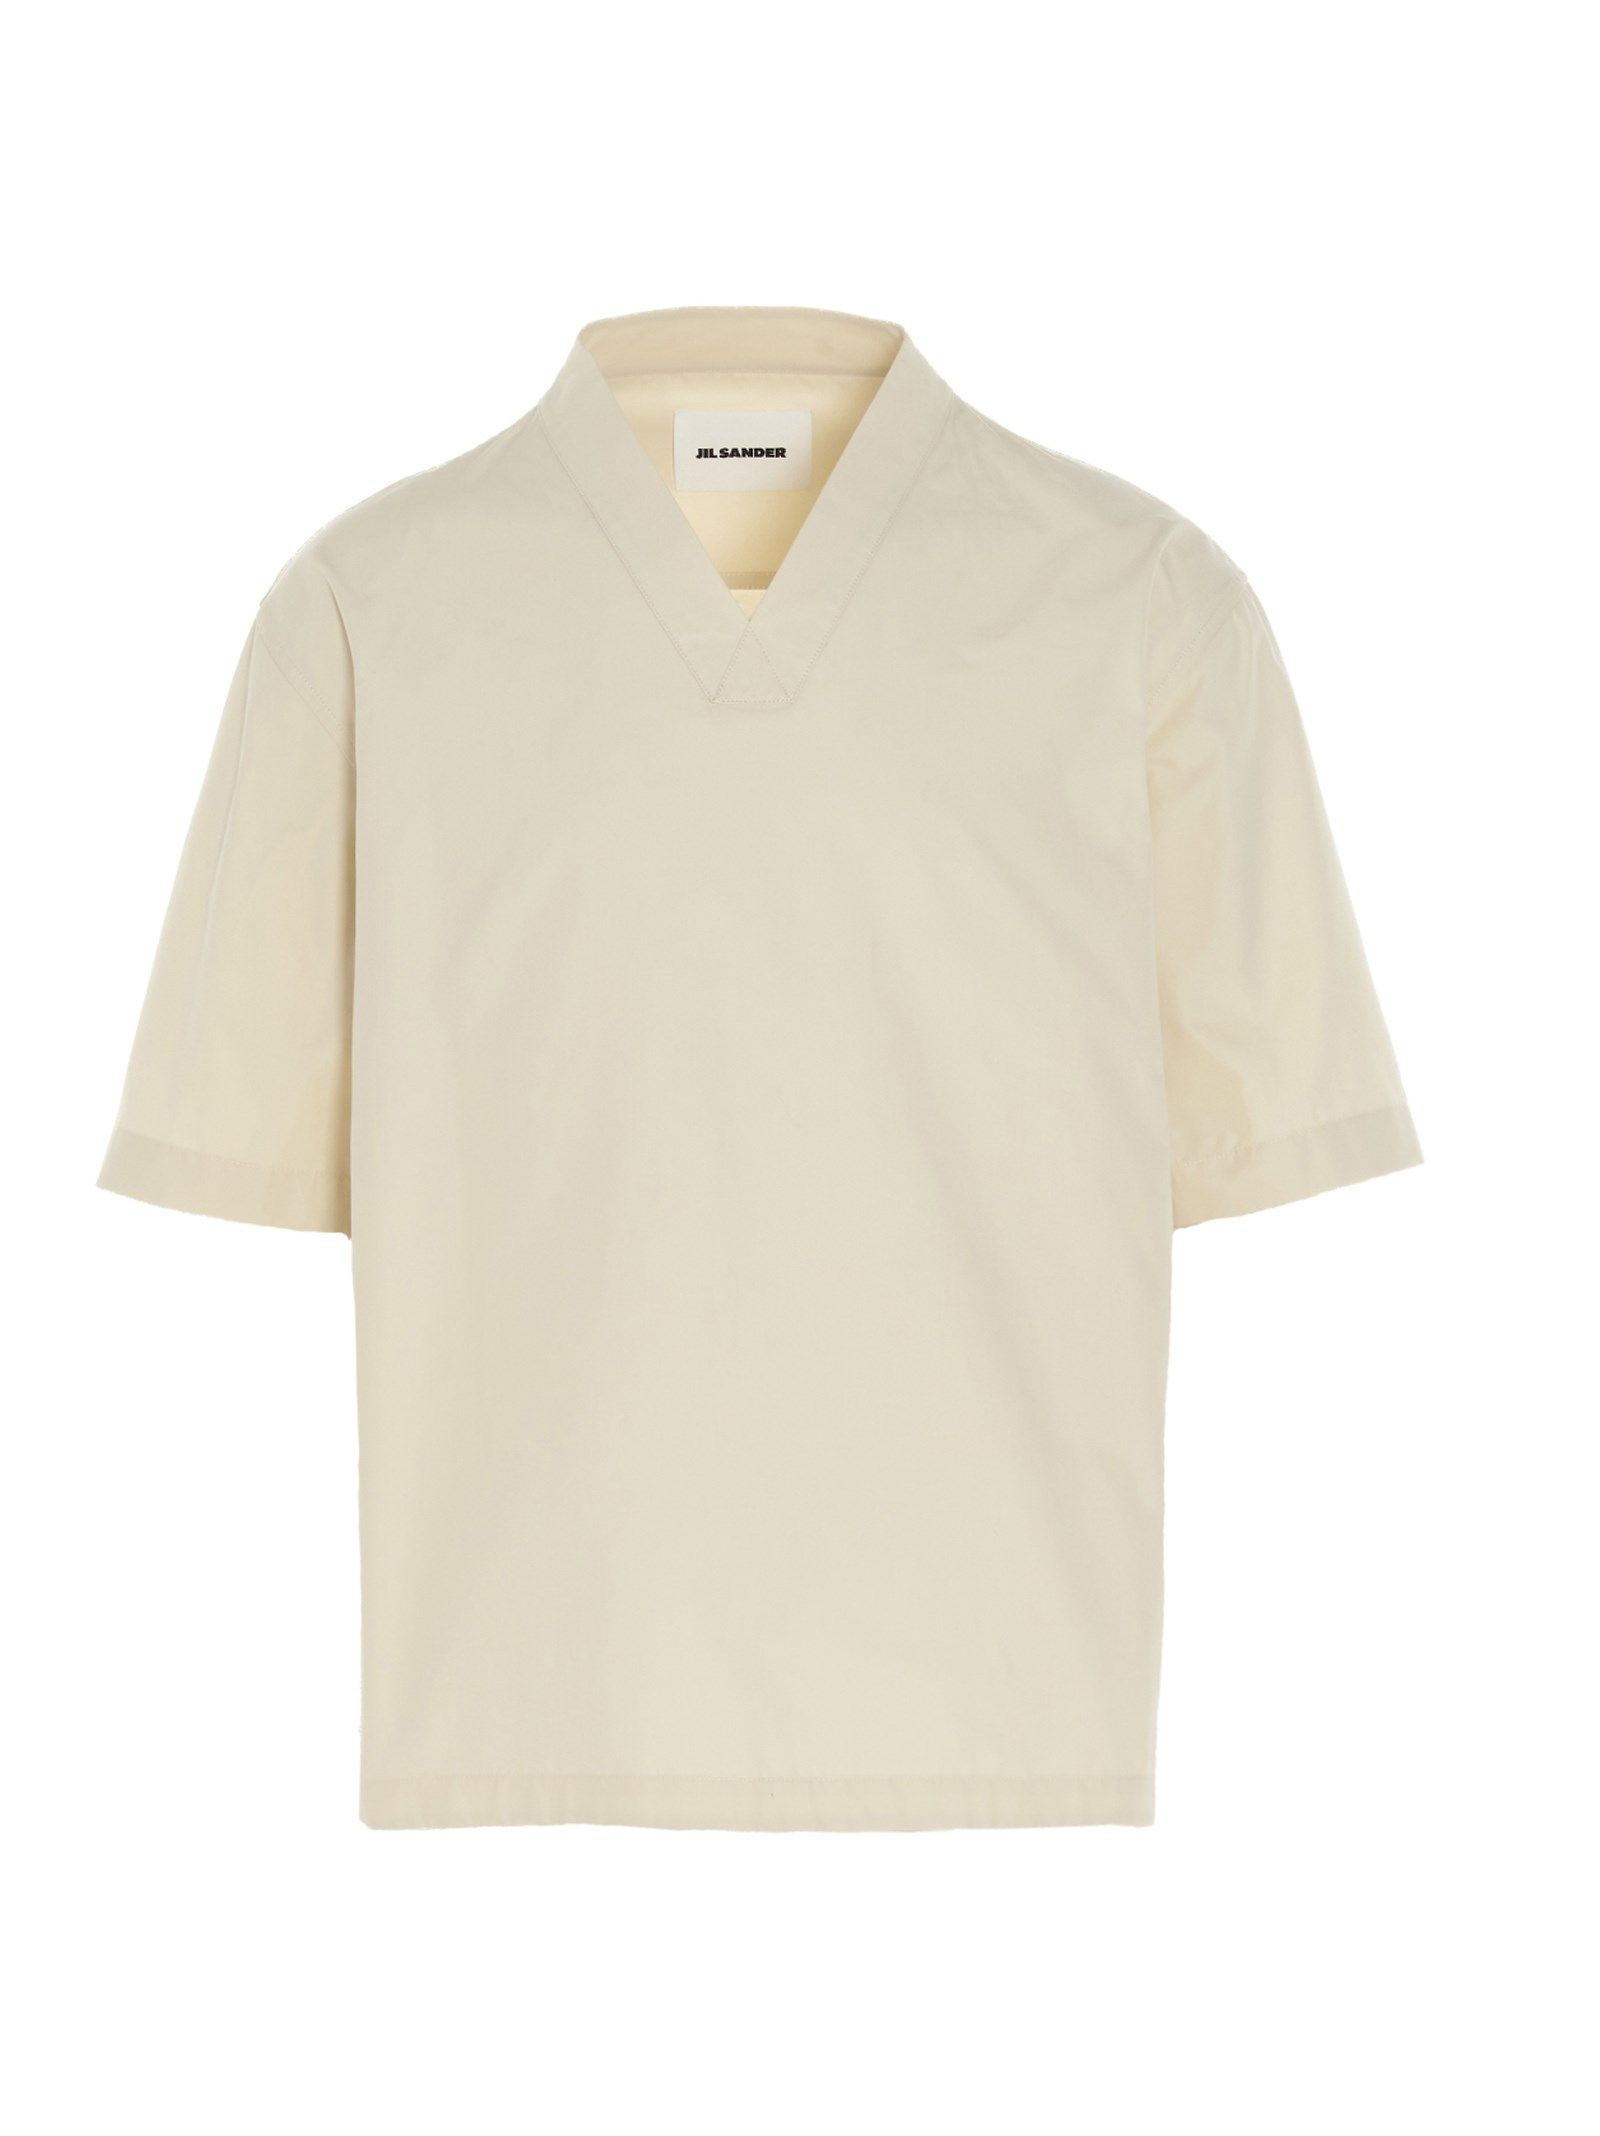 Jil Sander Cottons JIL SANDER MEN'S JSMS420631MS244200B687 BEIGE OTHER MATERIALS SHIRT